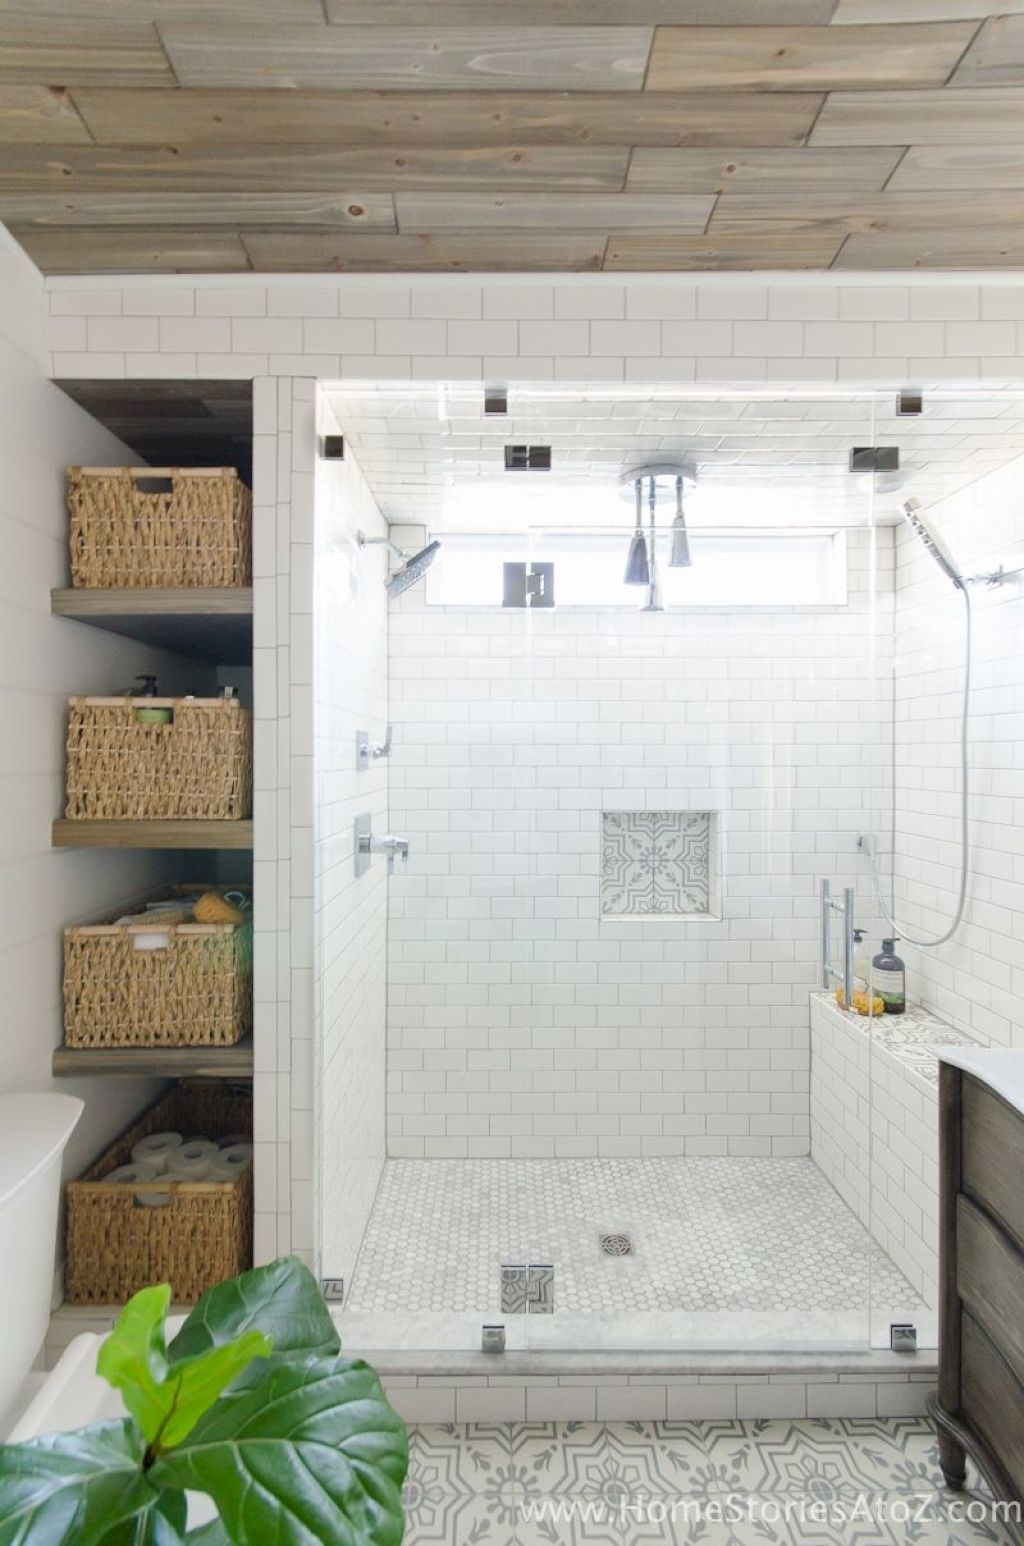 Badkamer Verbouwen Douche 9 Secret Advice To Make An Outstanding Home Bathroom Remodel